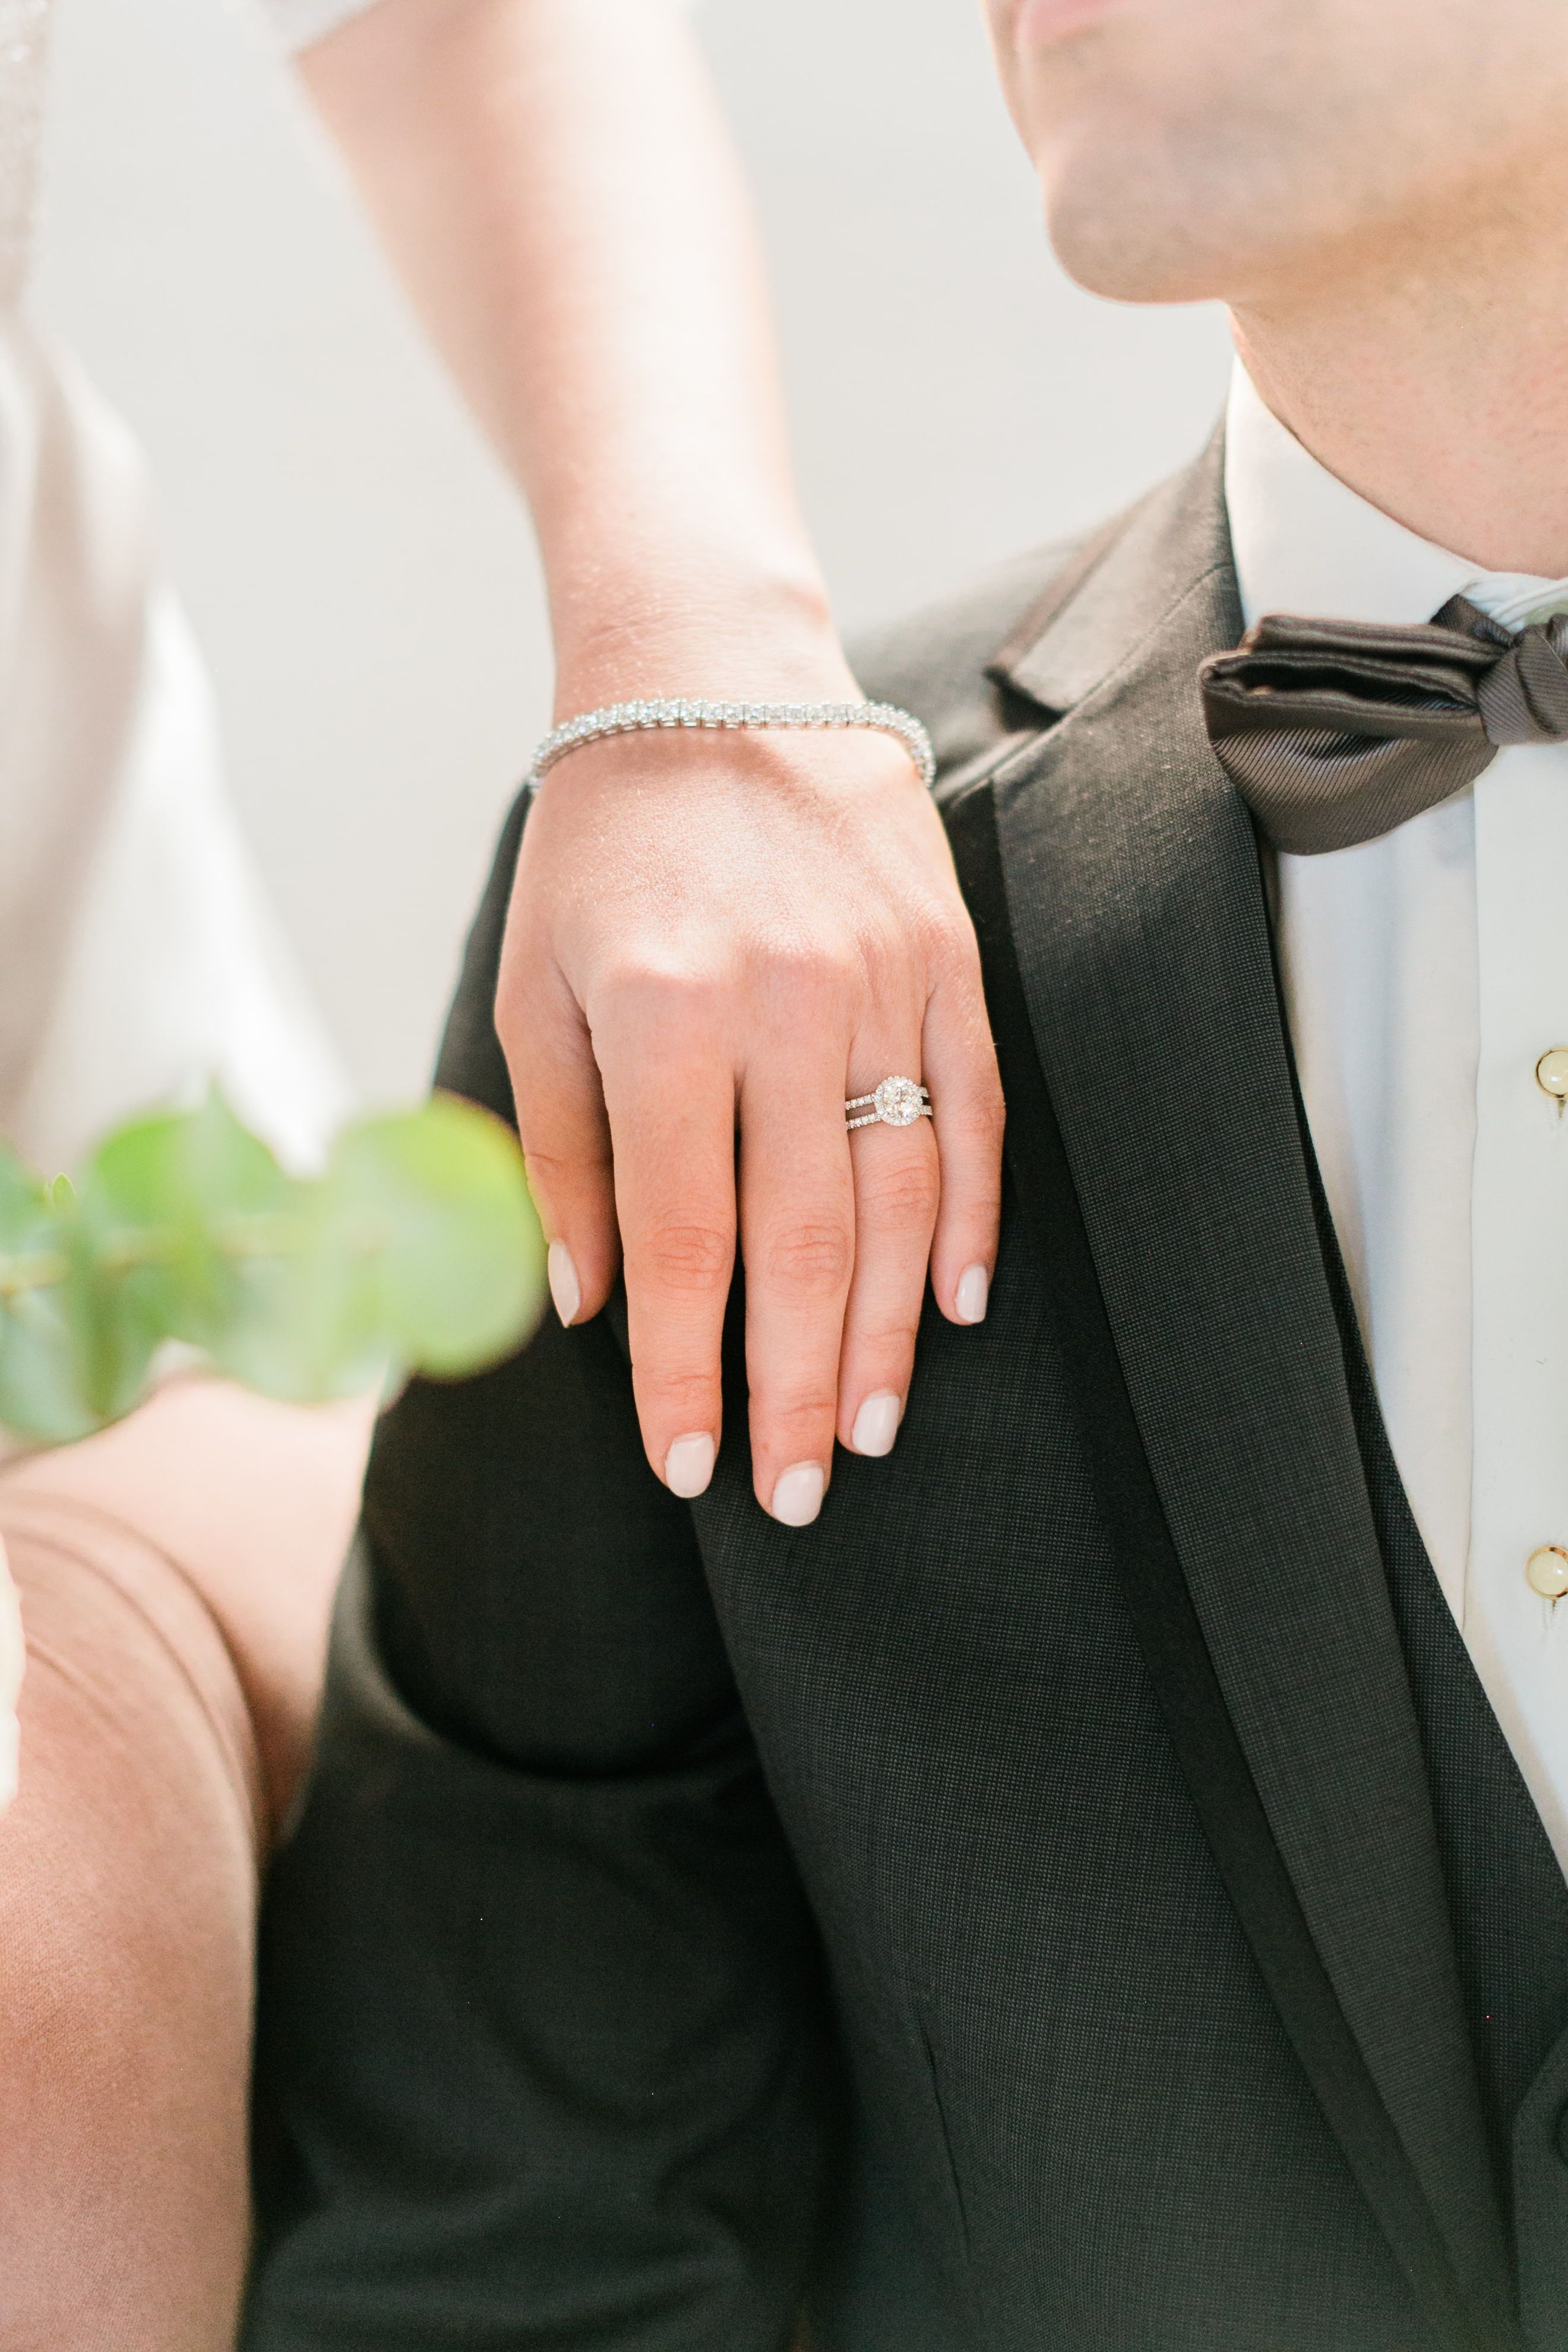 beyond the ring: jewelry we're loving for the big day